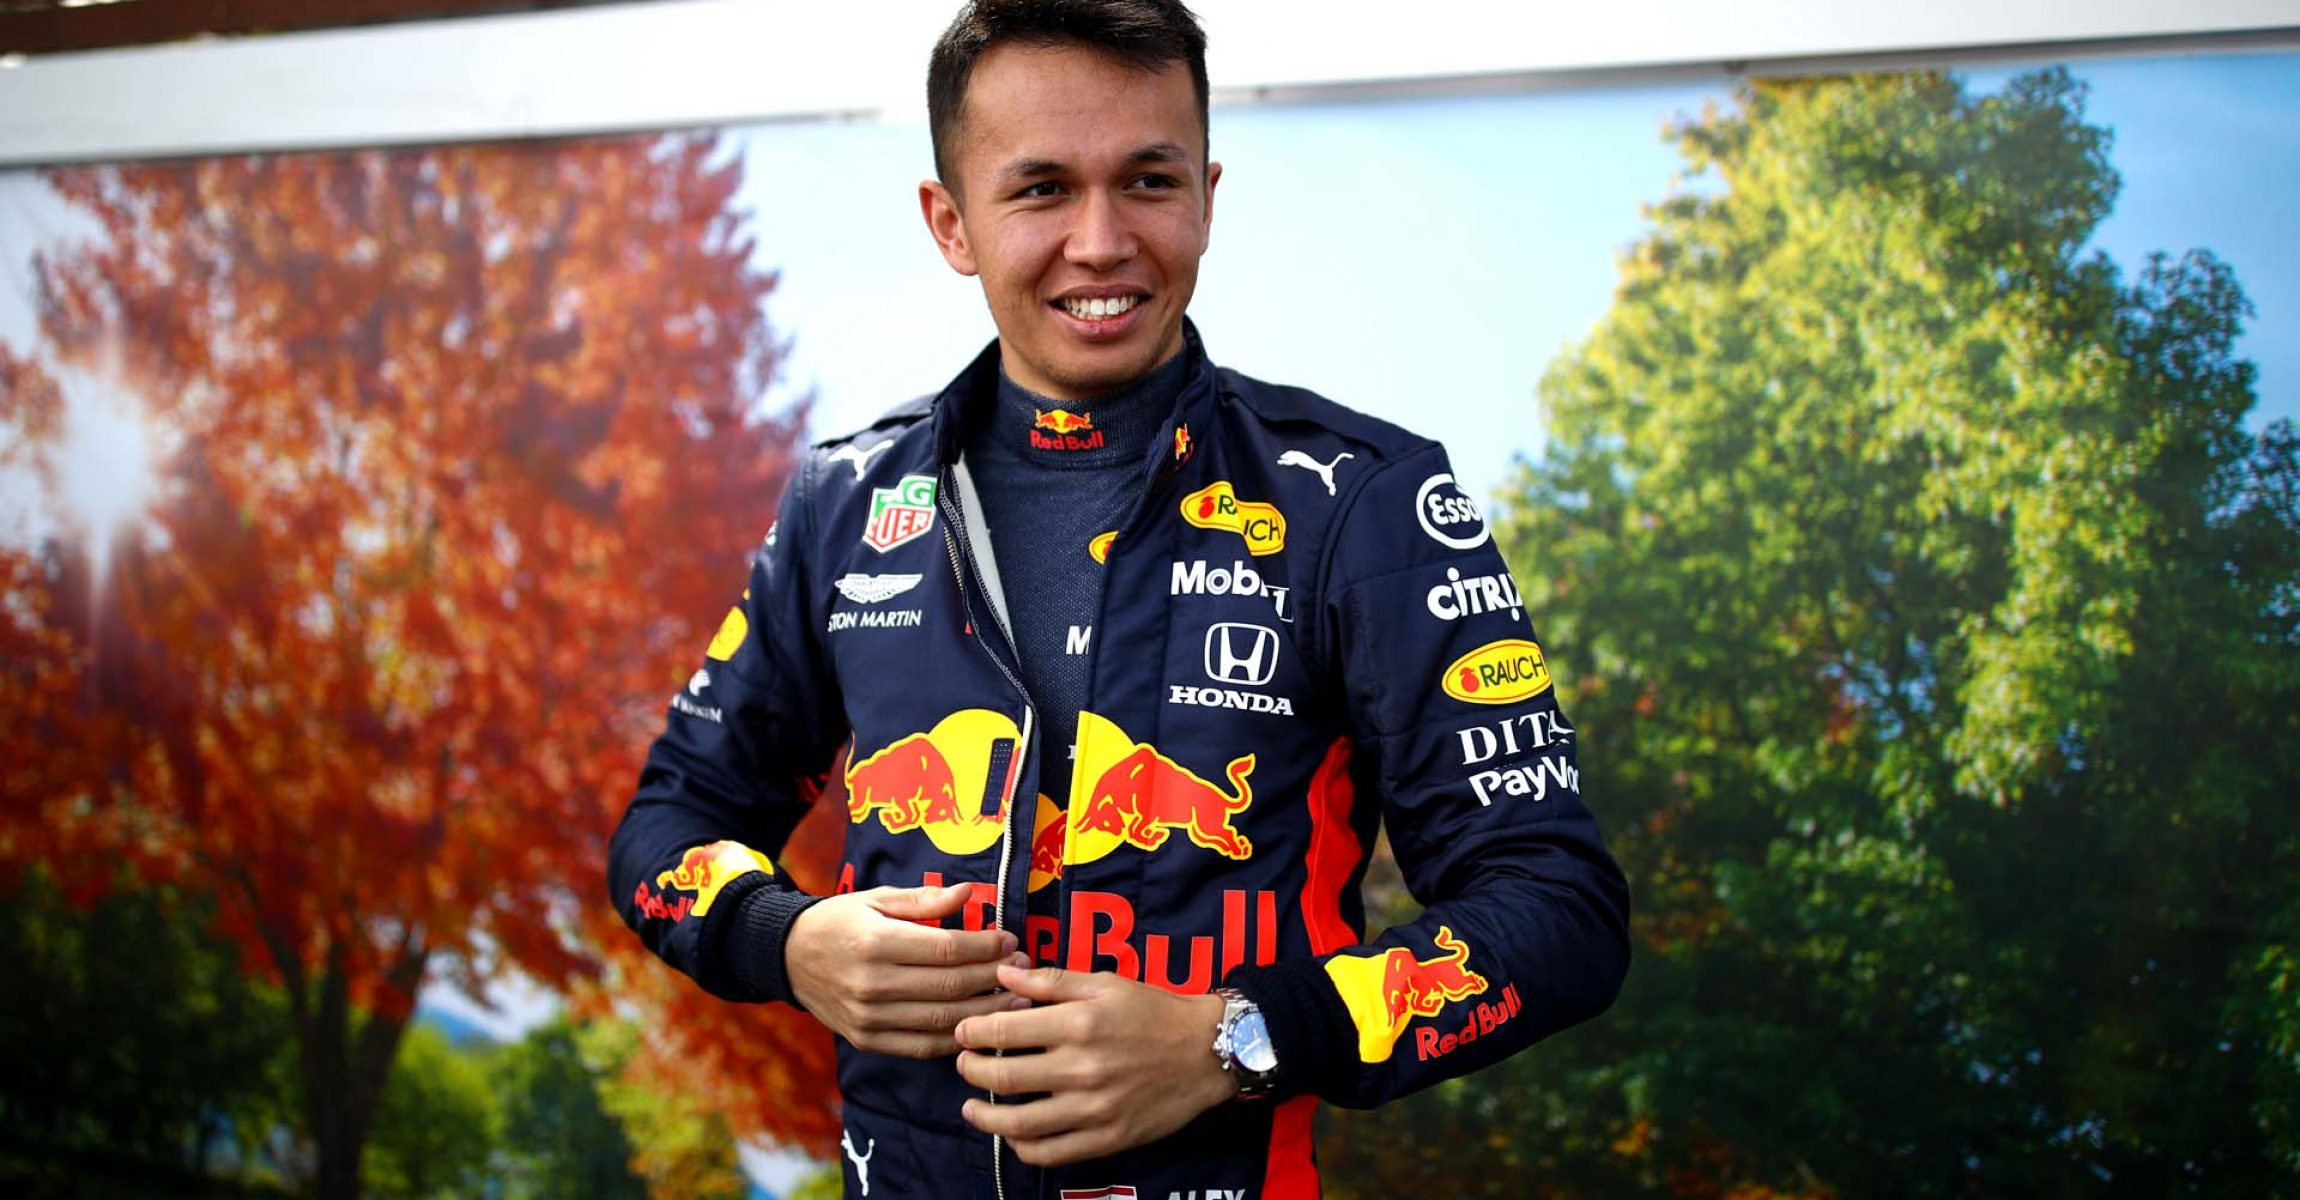 MELBOURNE, AUSTRALIA - MARCH 12: Alexander Albon of Thailand and Red Bull Racing looks on in the Paddock during previews ahead of the F1 Grand Prix of Australia at Melbourne Grand Prix Circuit on March 12, 2020 in Melbourne, Australia. (Photo by Mark Thompson/Getty Images) // Getty Images / Red Bull Content Pool // AP-23CHBW9HD2111 // Usage for editorial use only //